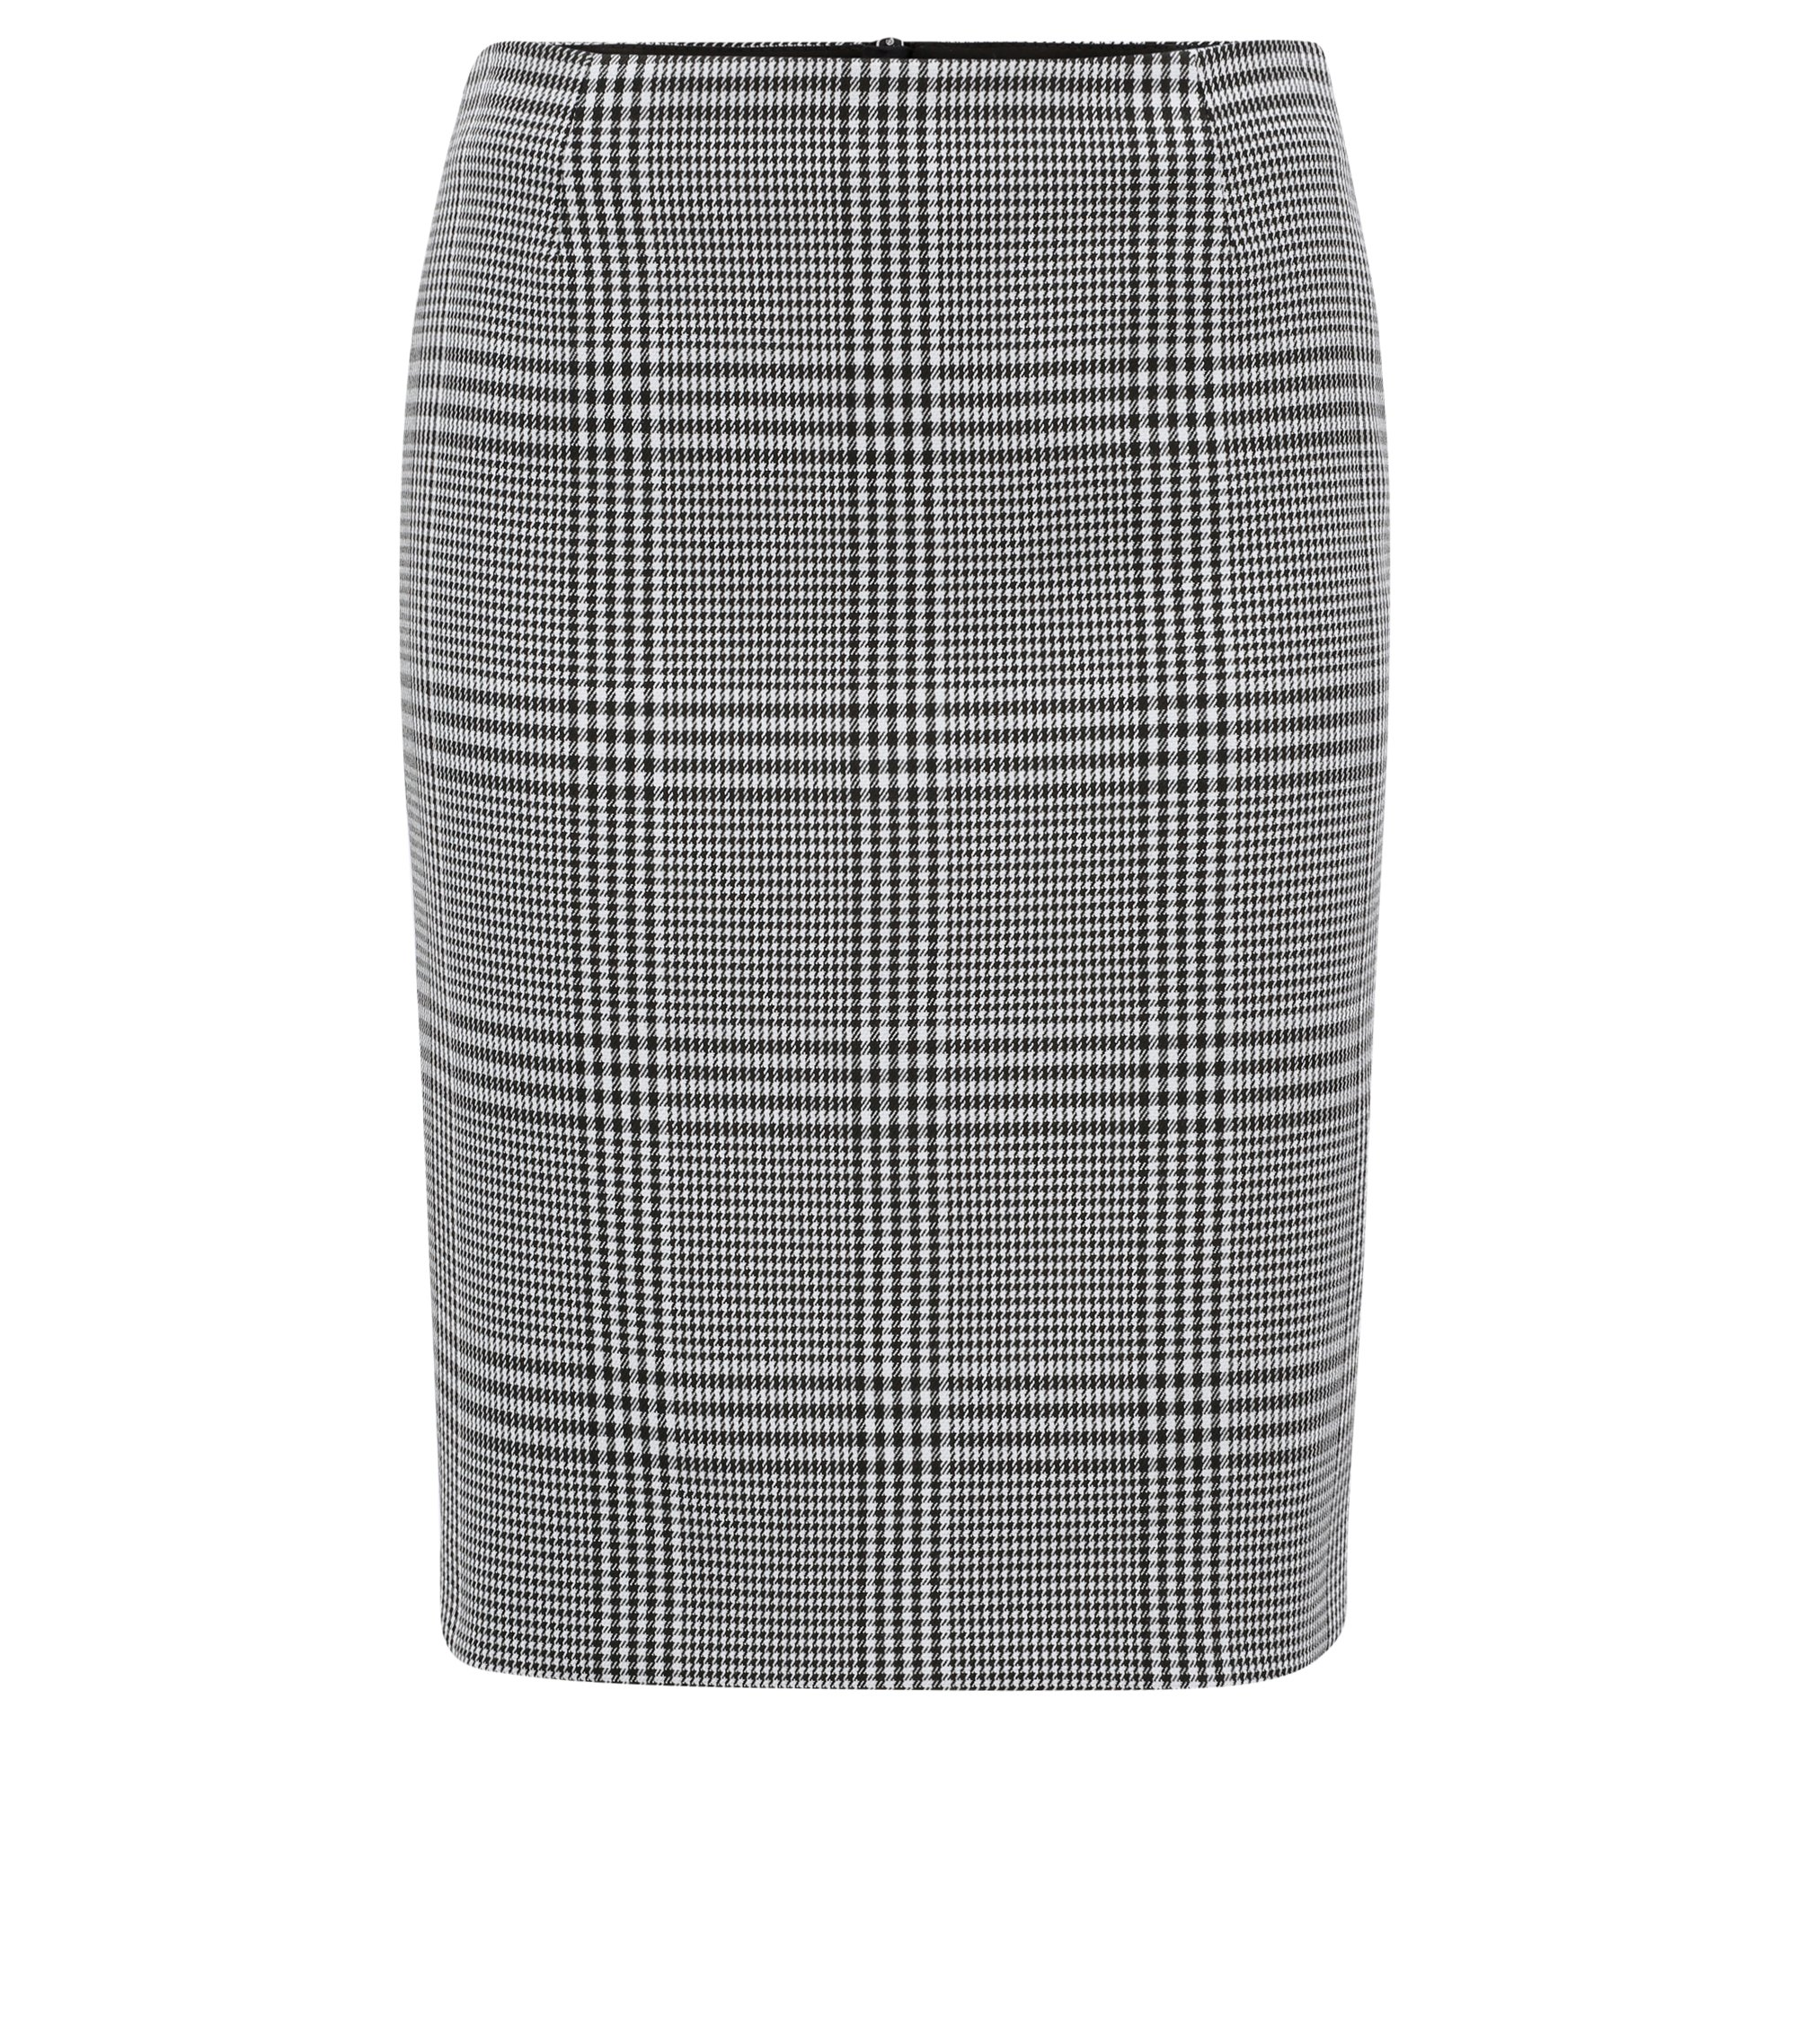 Glen-check pencil skirt with exposed zip, Patterned